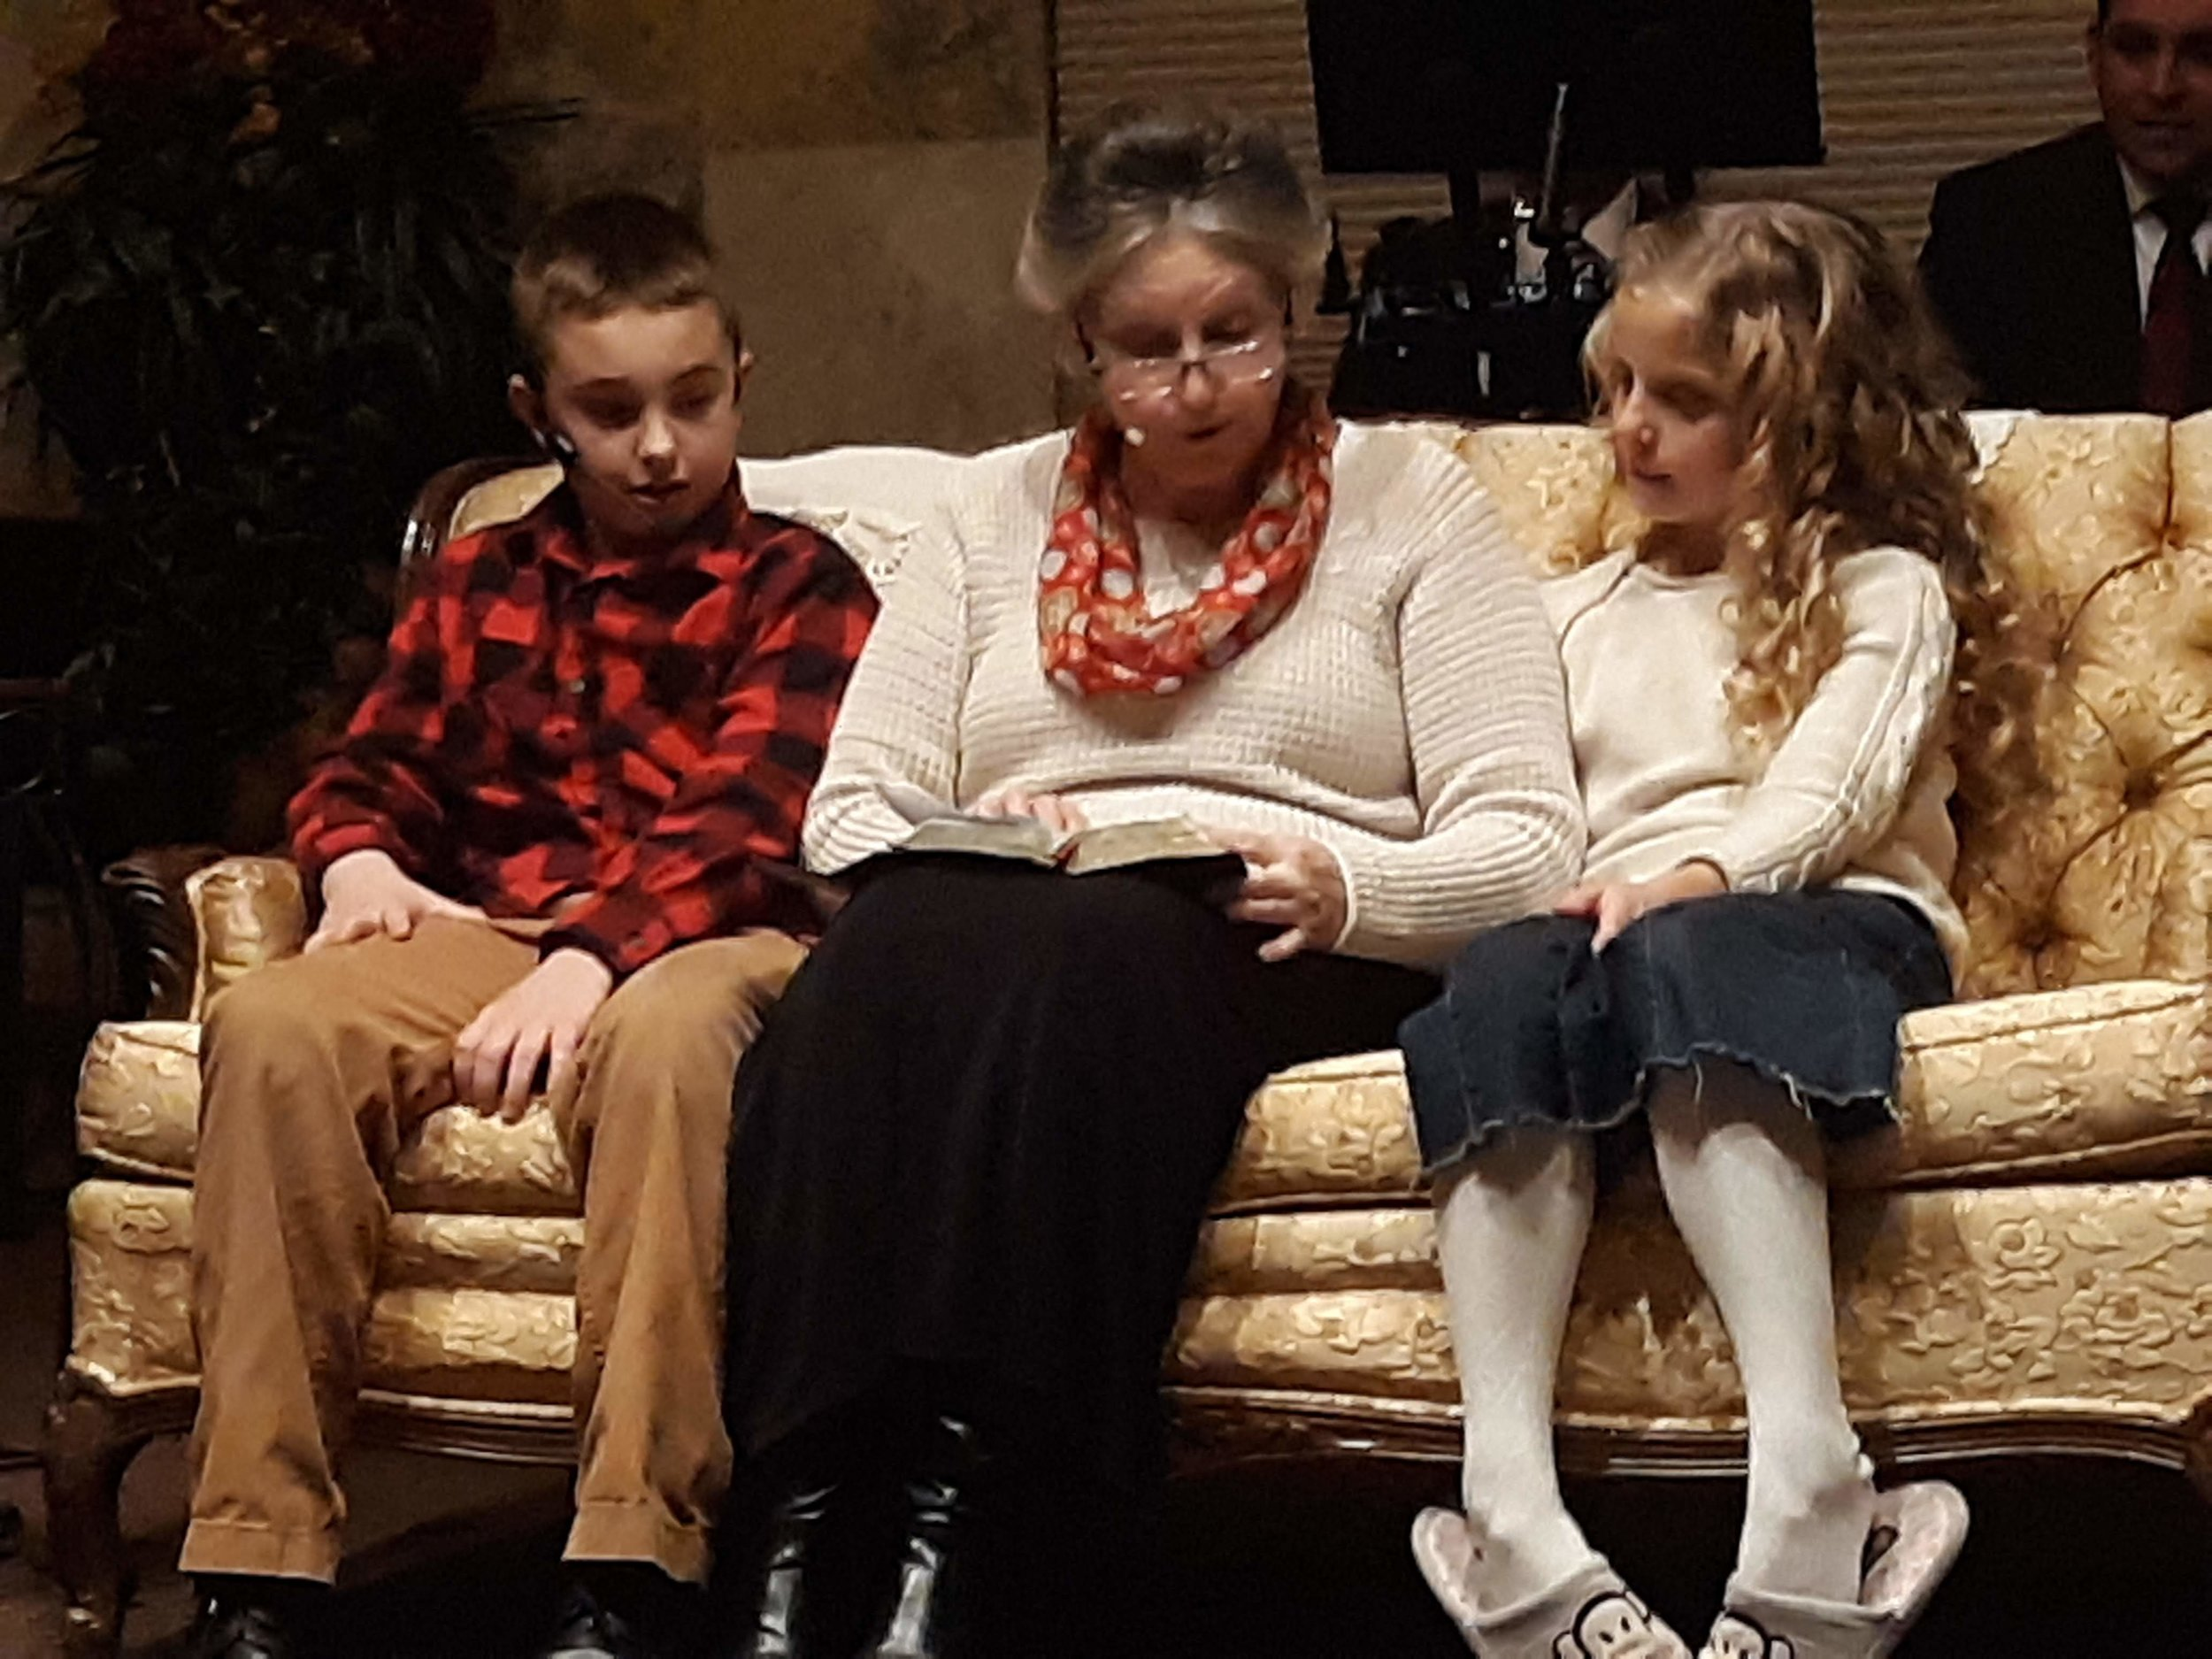 """Grandma"" finishes telling Dallas and Mandy about the true meaning of Christmas."